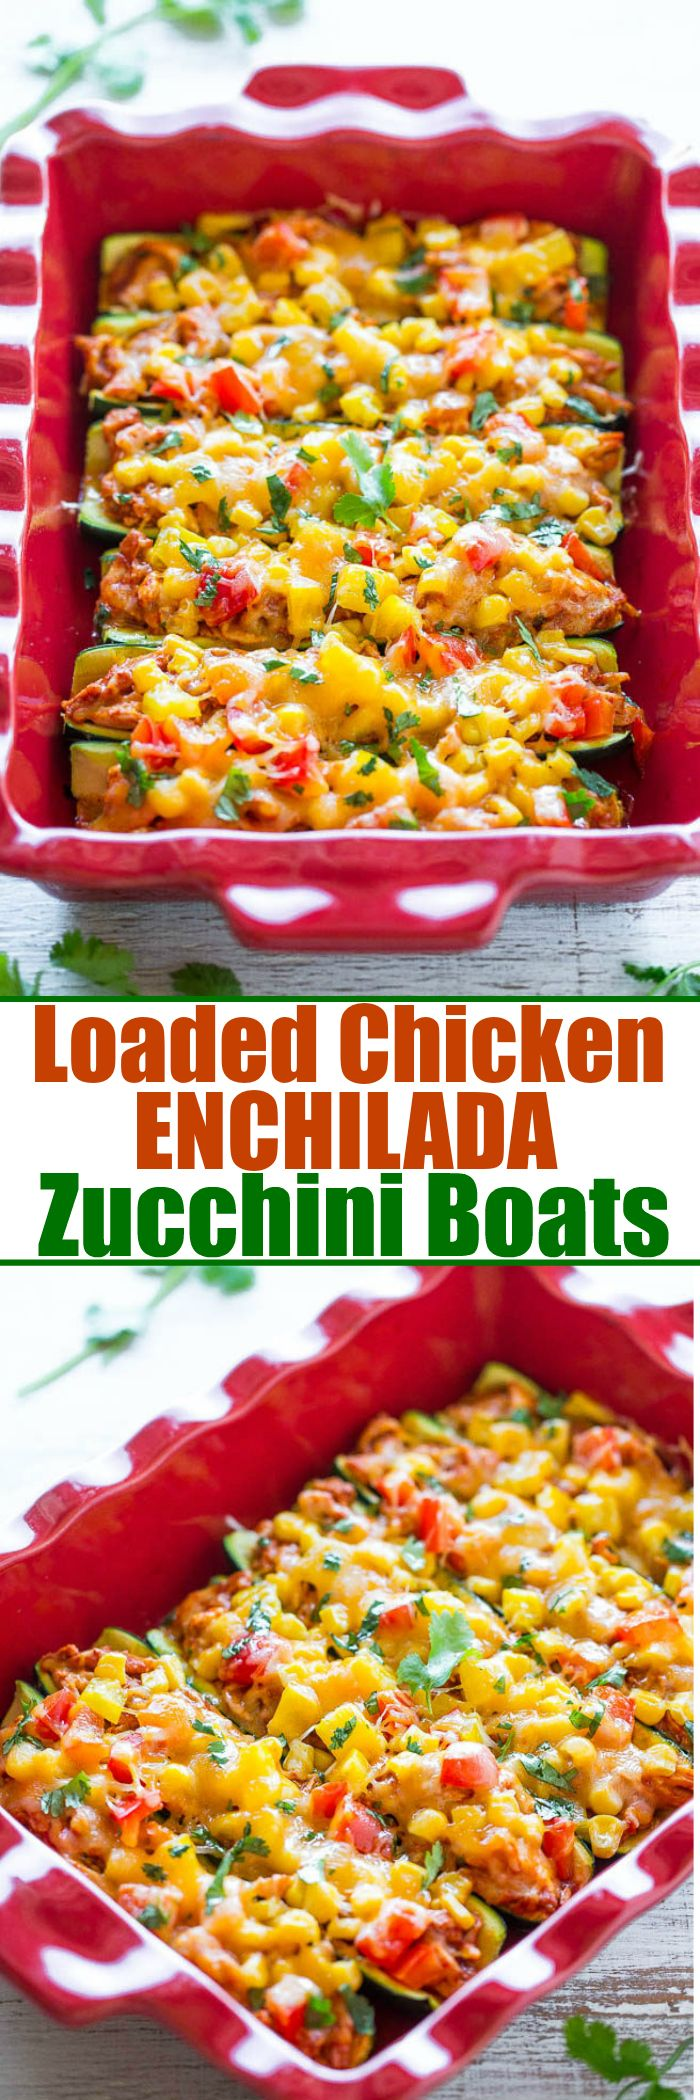 Loaded Chicken Enchilada Zucchini Boats - Skip enchilada wraps and use zucchini instead!! Easy, healthier and there's so much FLAVOR between juicy chicken drenched in enchilada sauce, corn, peppers, and CHEESE!!